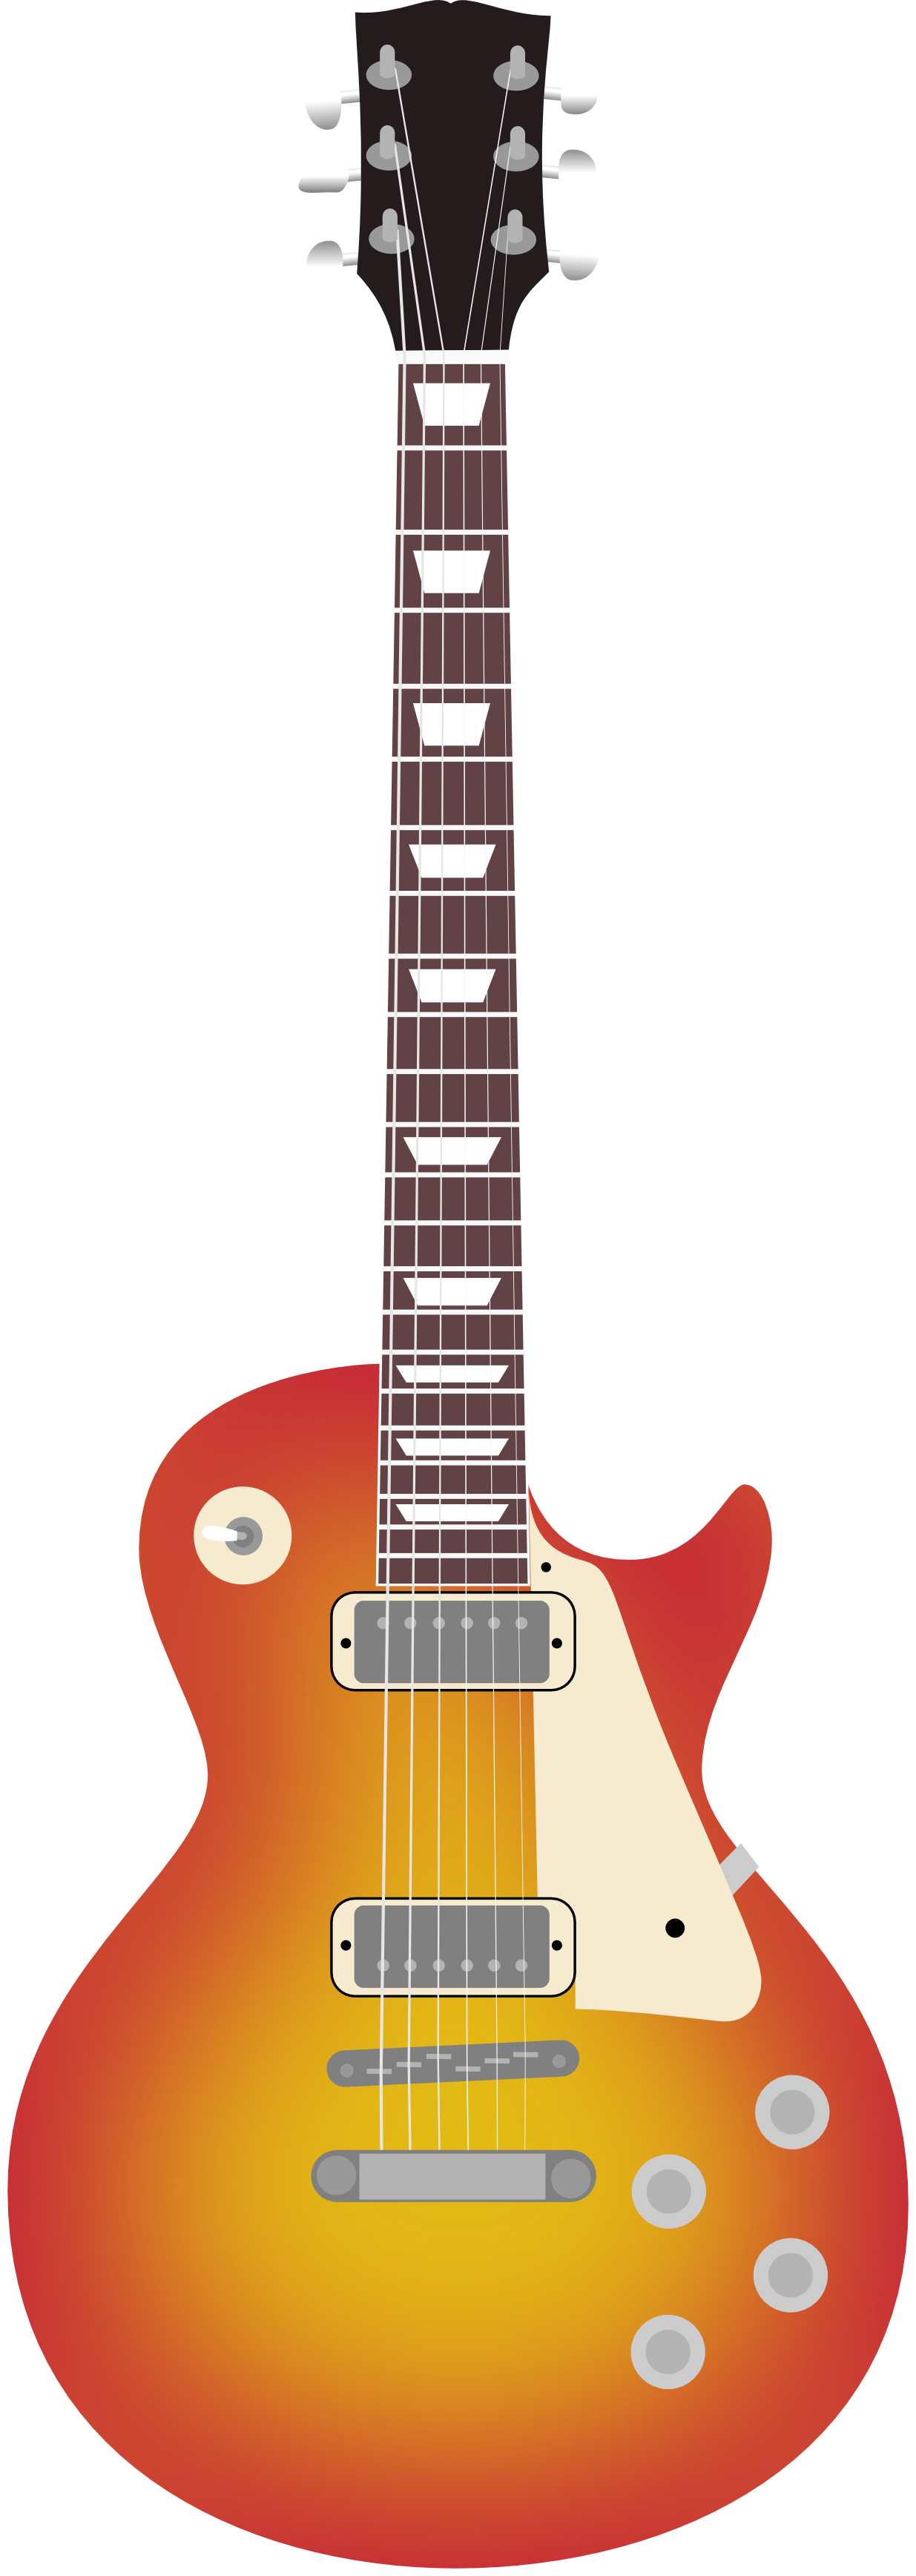 gibson les paul by shimmerscroll gibson les paul by shimmerscroll